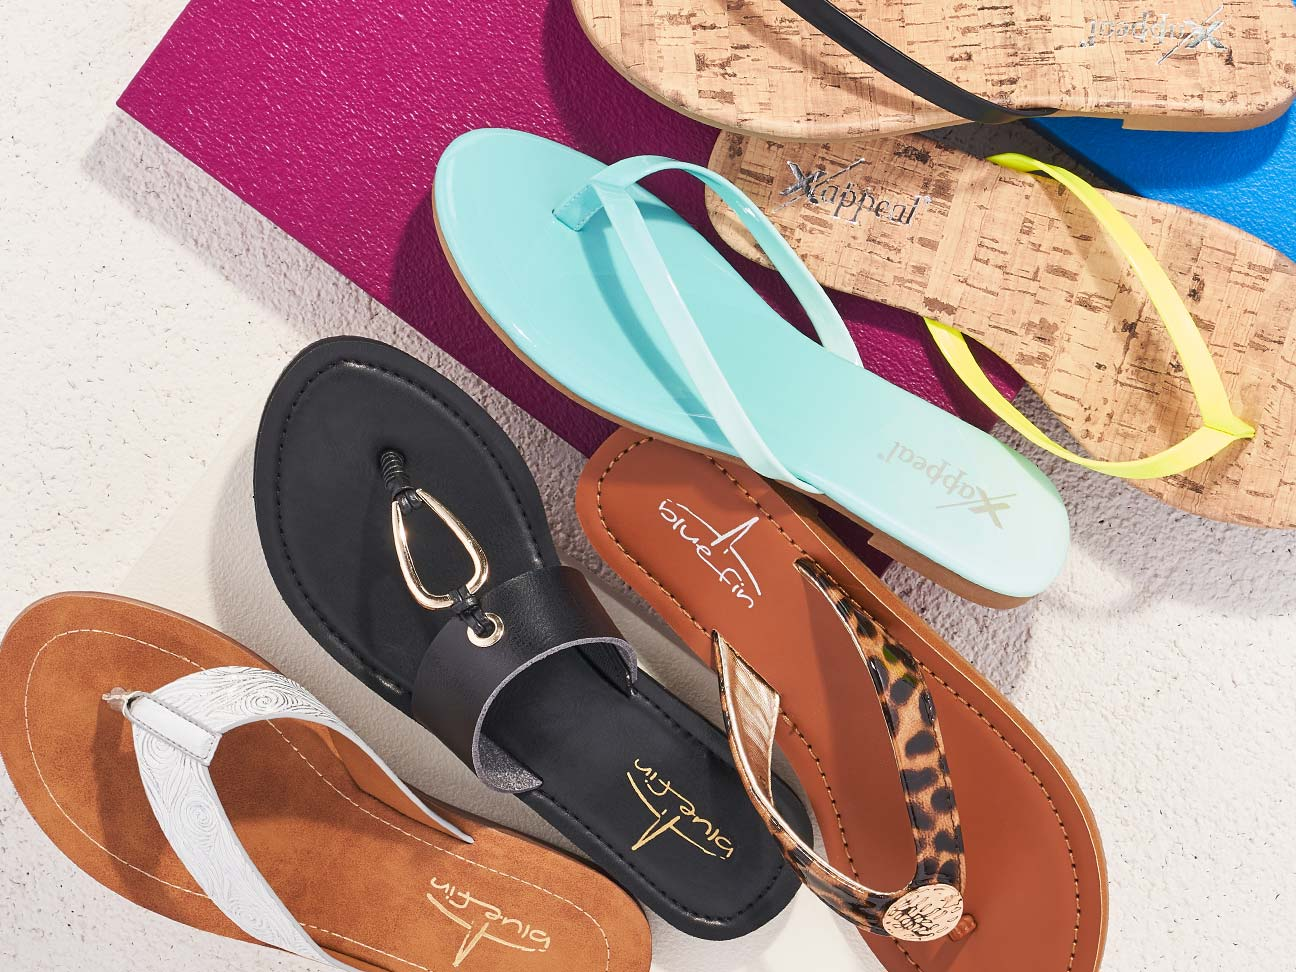 7bcf38092c WOMEN'S SANDALS STARTING AT $9.99. Time for a total sandal ...